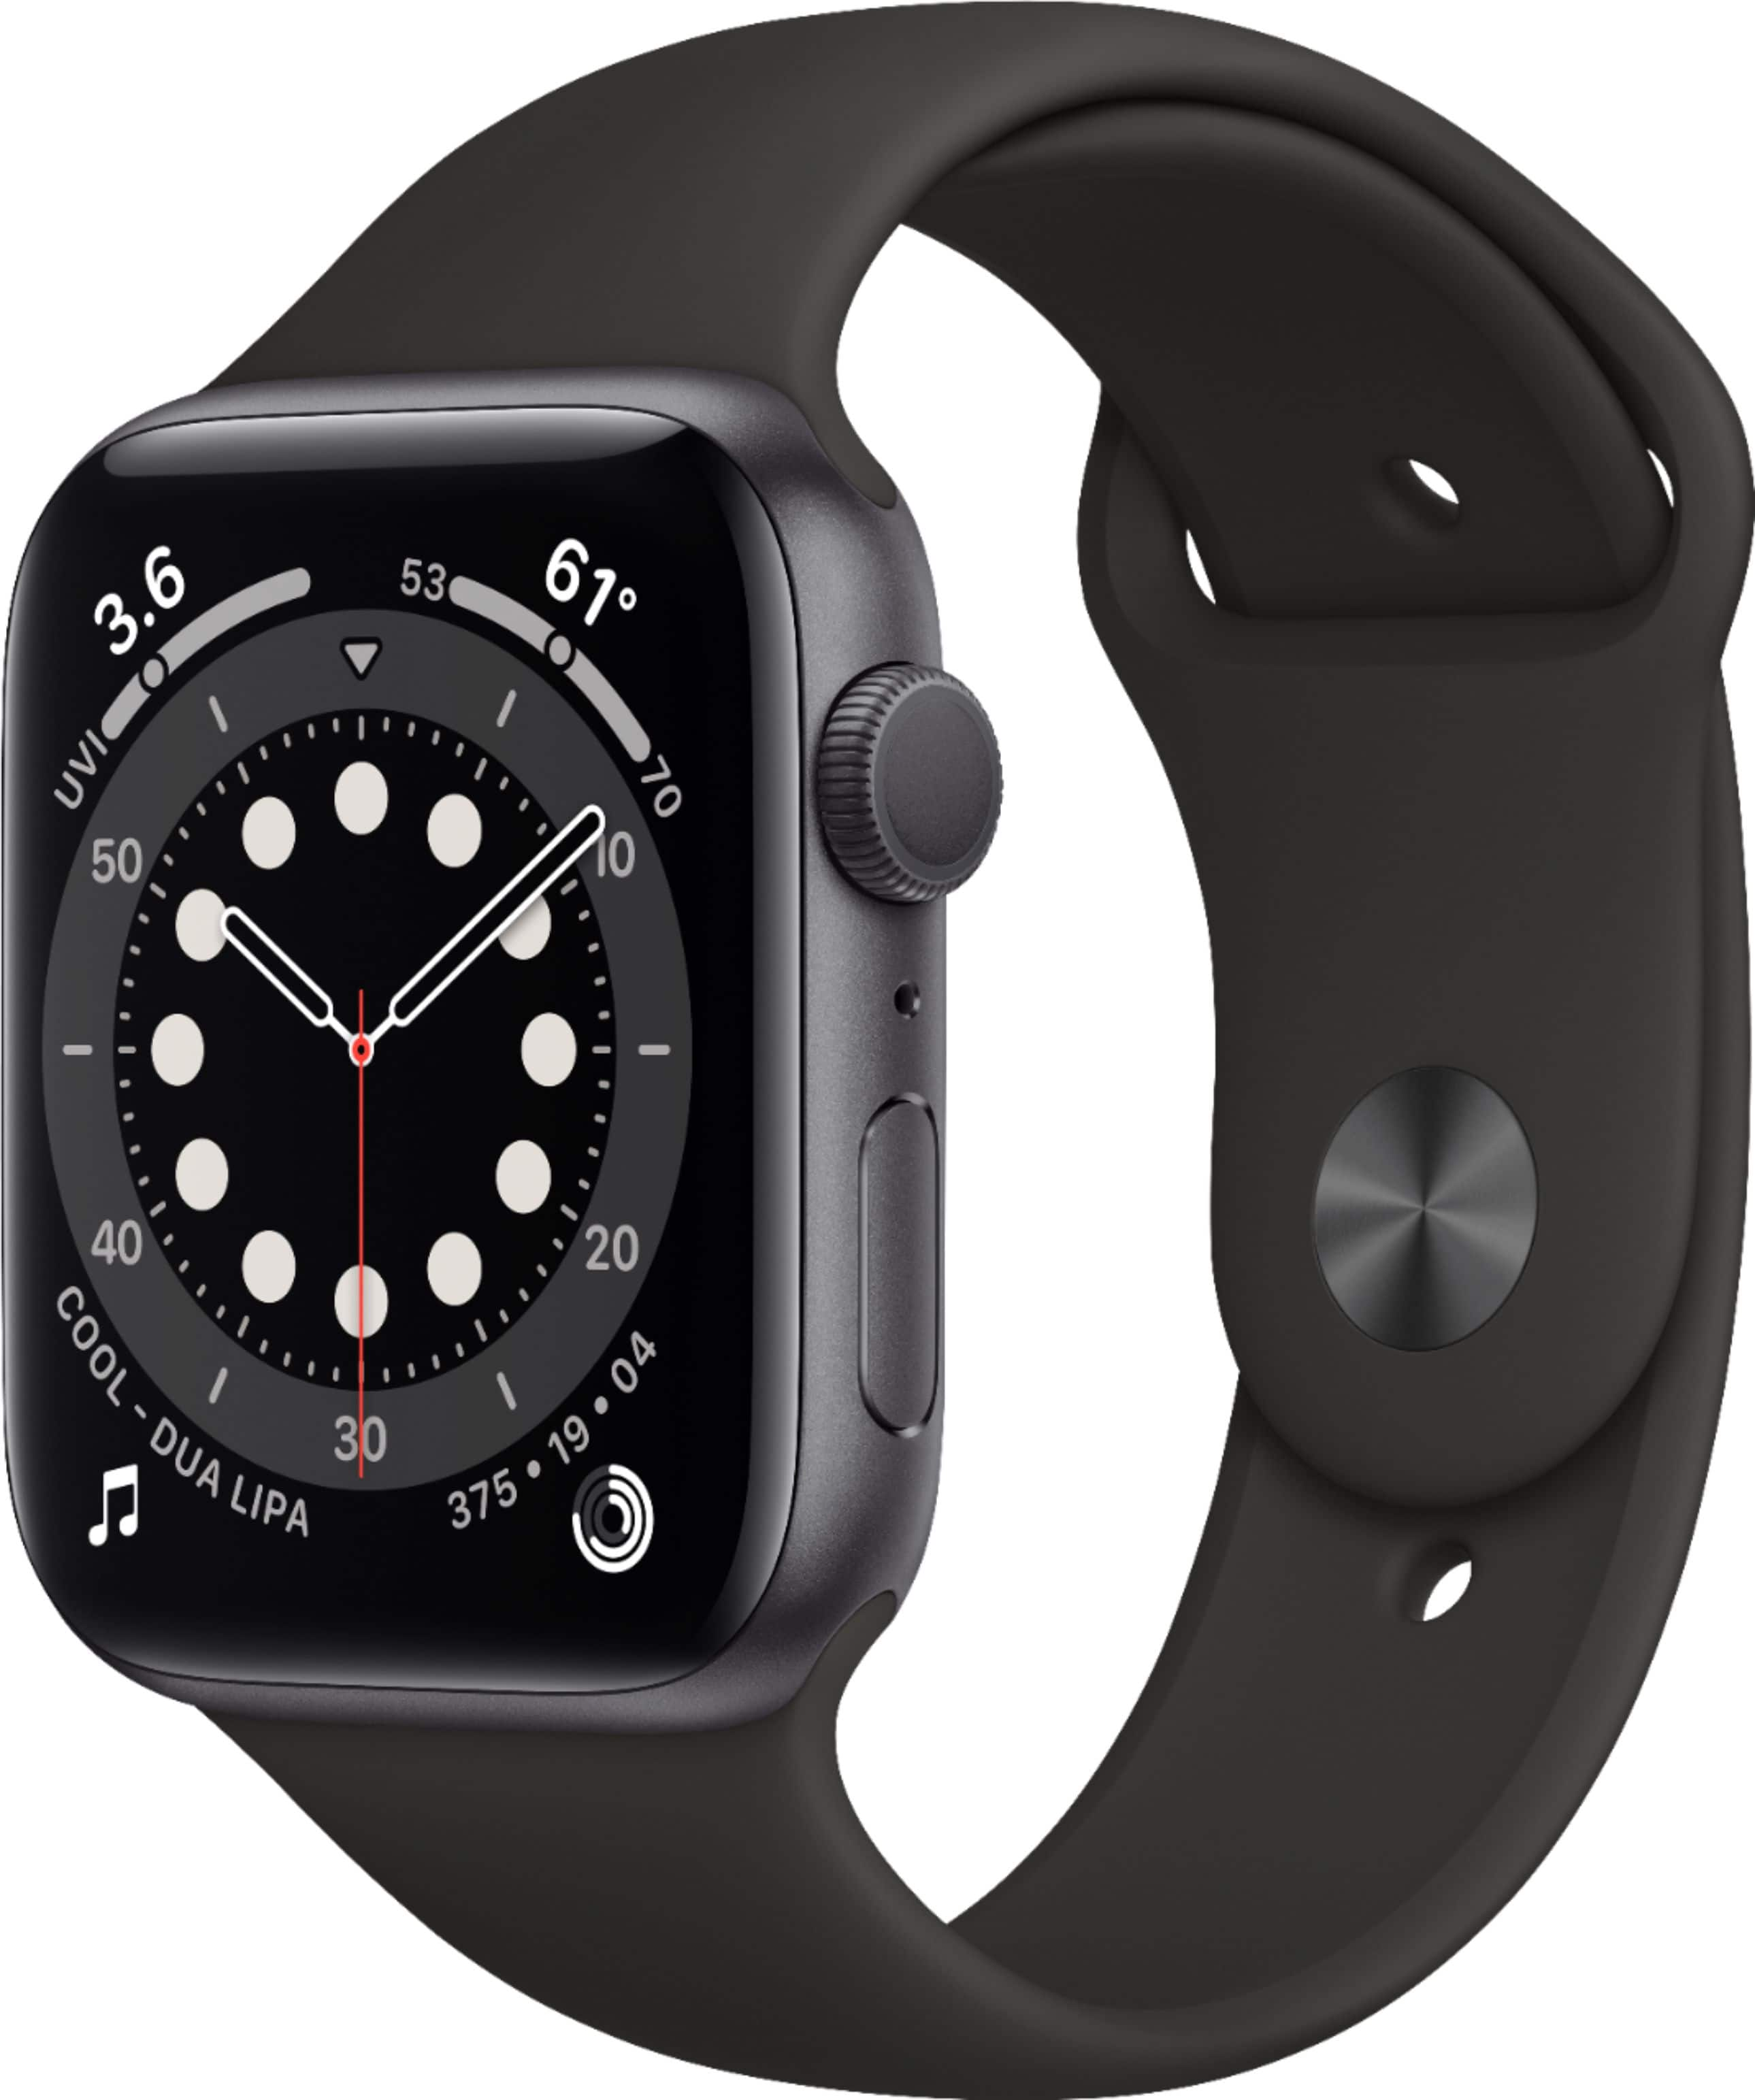 Apple Watch Series 6 (GPS) 44mm Space Gray Aluminum Case with Black Sport Band Space Gray M00H3LL/A - Best Buy $359